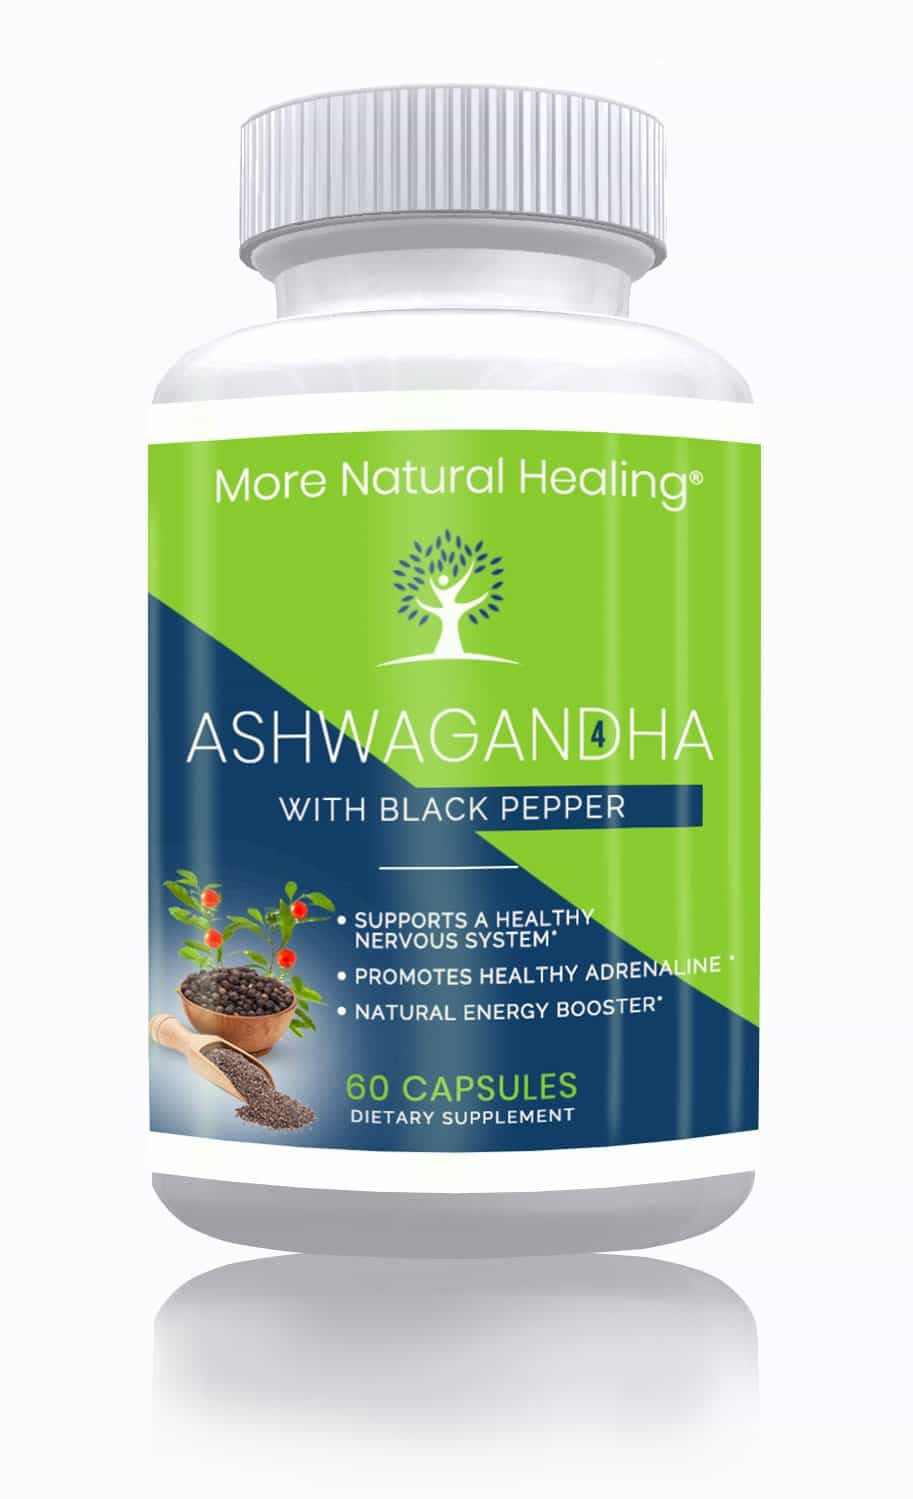 Organic Ashwagandha with Black Pepper Natural Energy Booster and Stress Relief Supplement - More Natural Healing